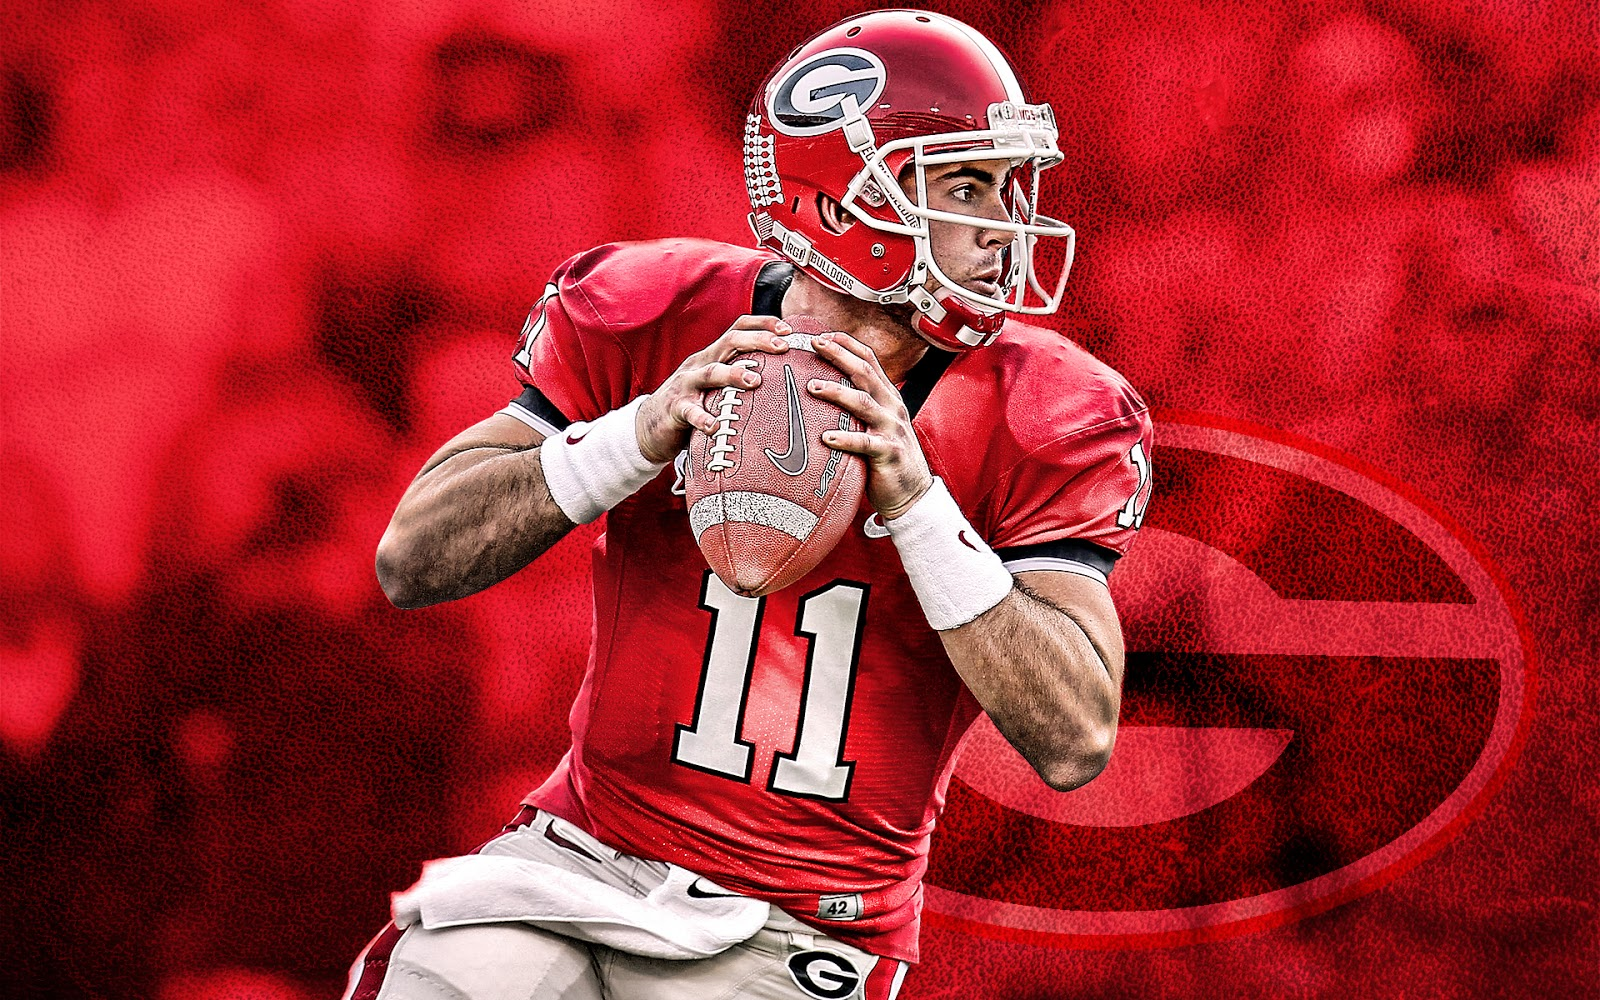 Georgia Bulldogs Wallpaper 21377 1600x1000 px